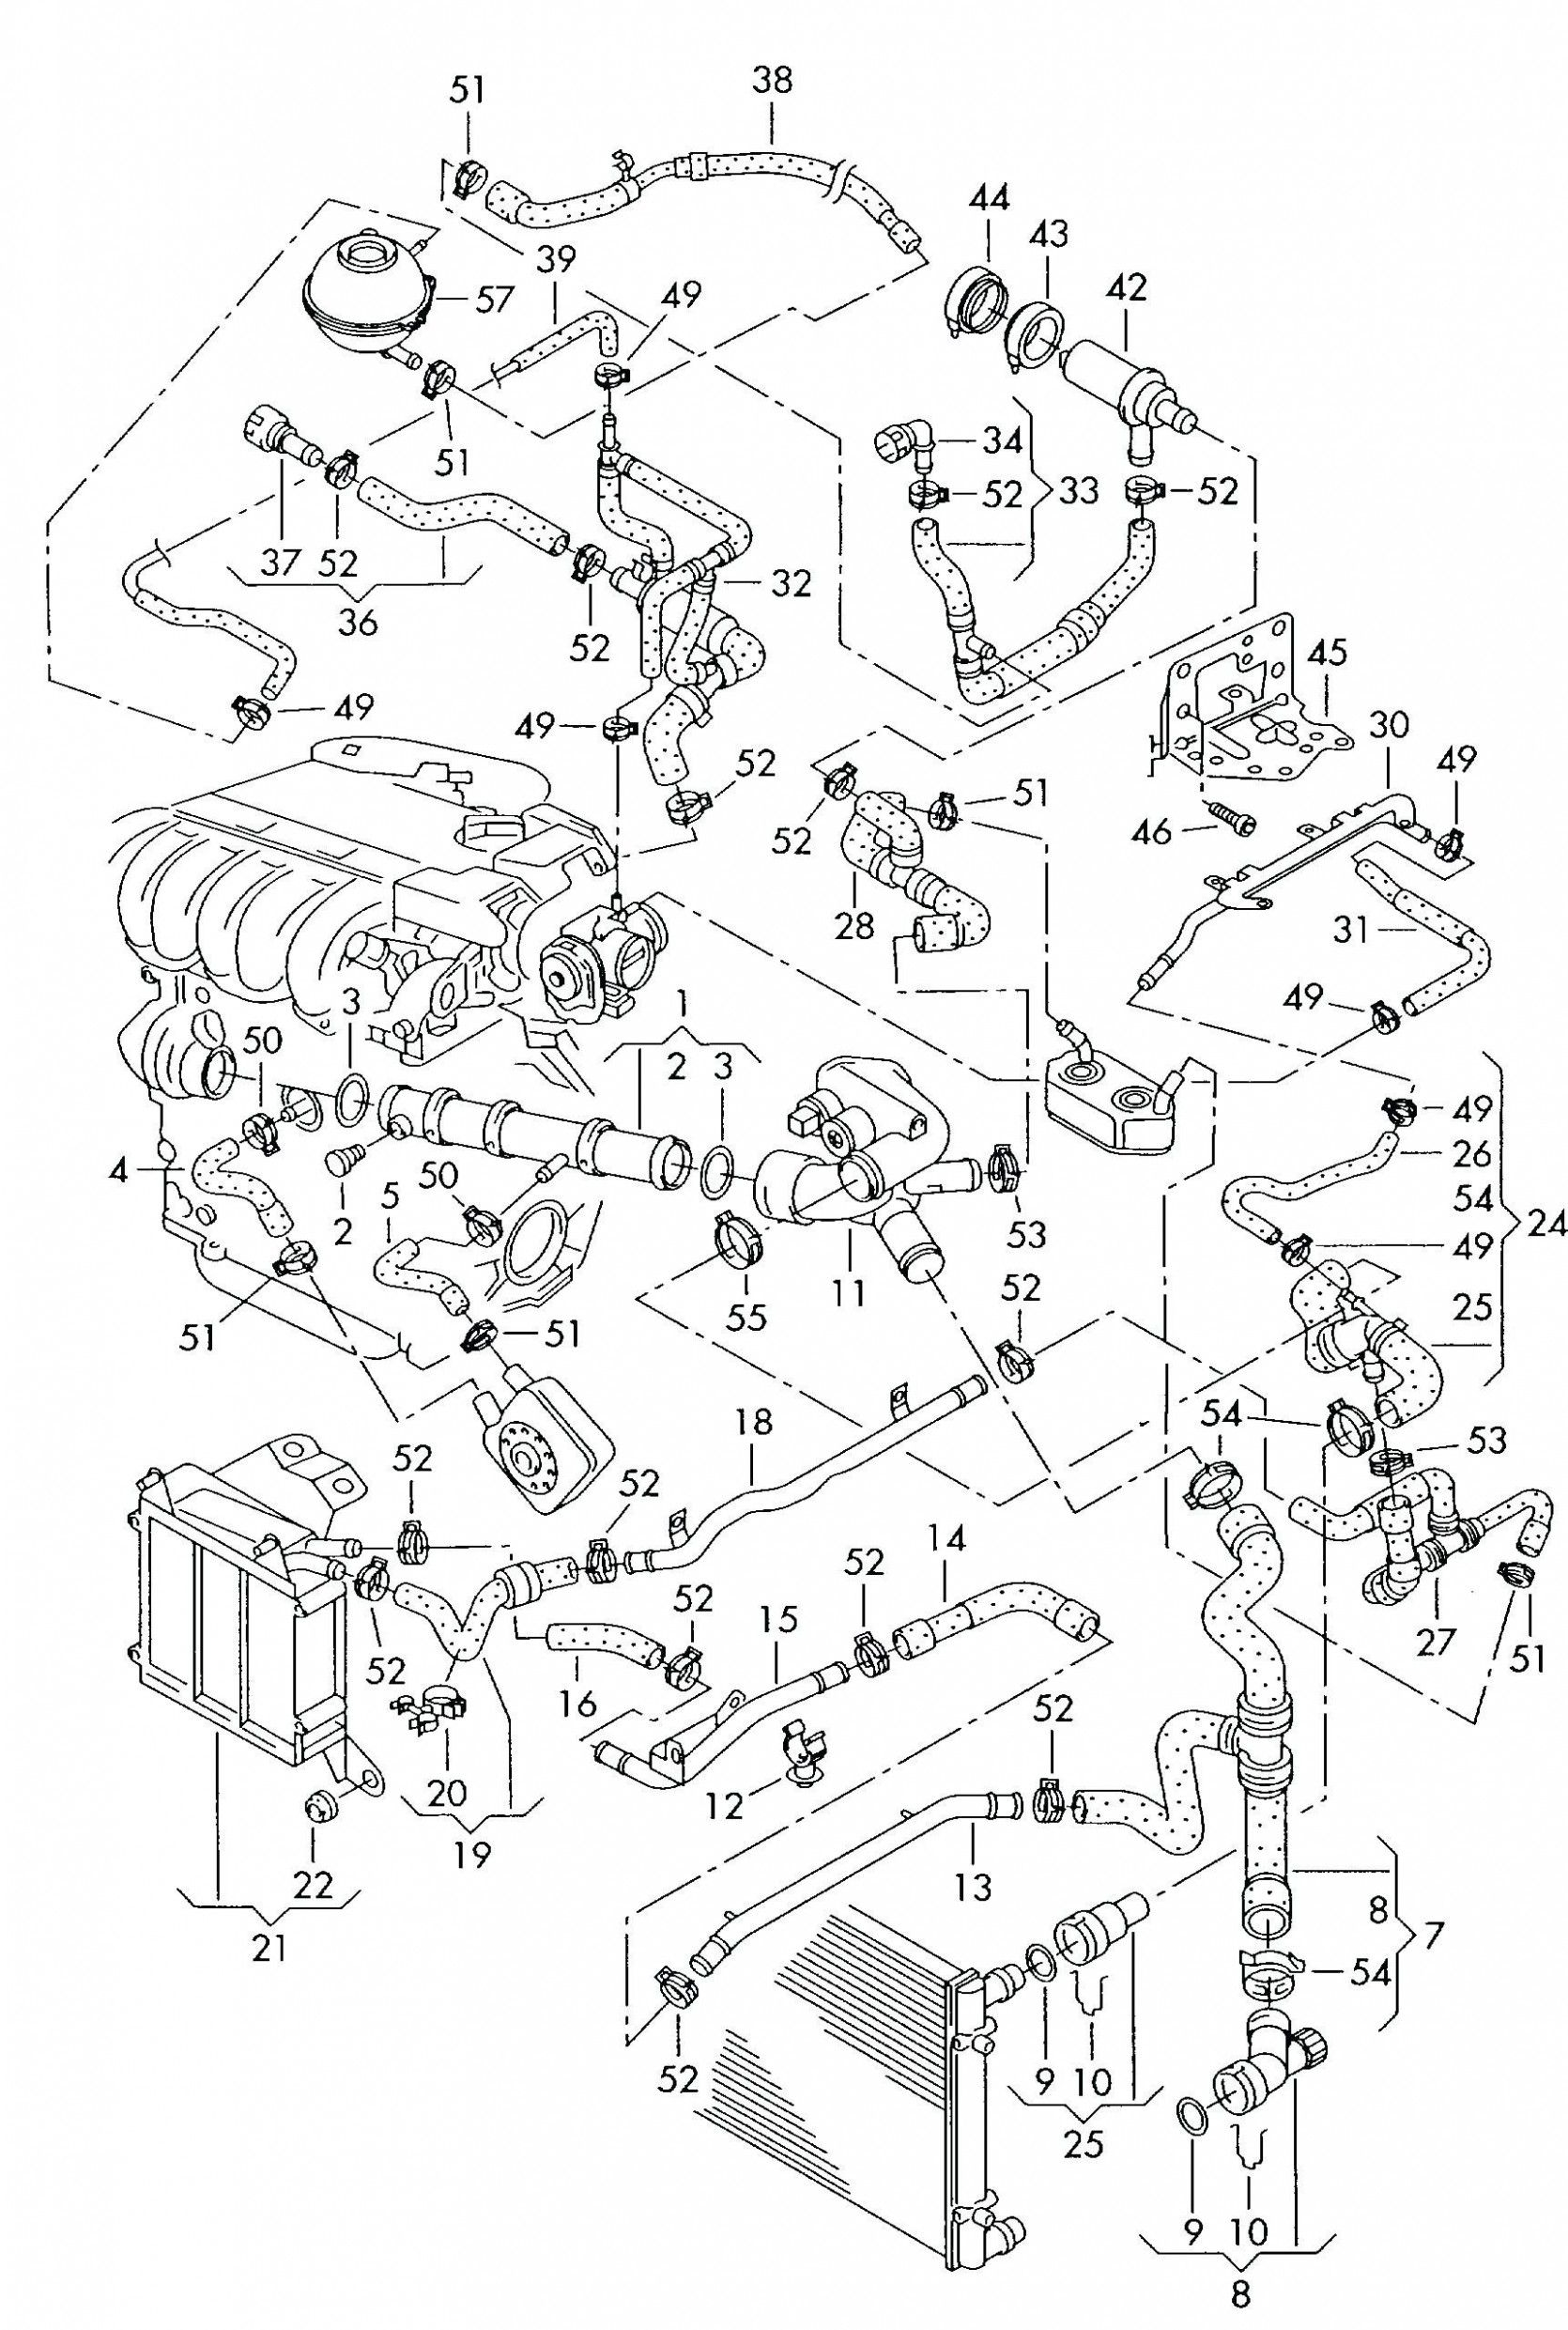 [DIAGRAM_4FR]  Vw Up Engine Diagram Guide Vw Up Engine Diagram Guide - vw up engine diagram  guide Delightful in order to our blog, in this particular occasion I'll  explain t… di 2020 | 2004 Jetta Engine Diagram |  | Pinterest